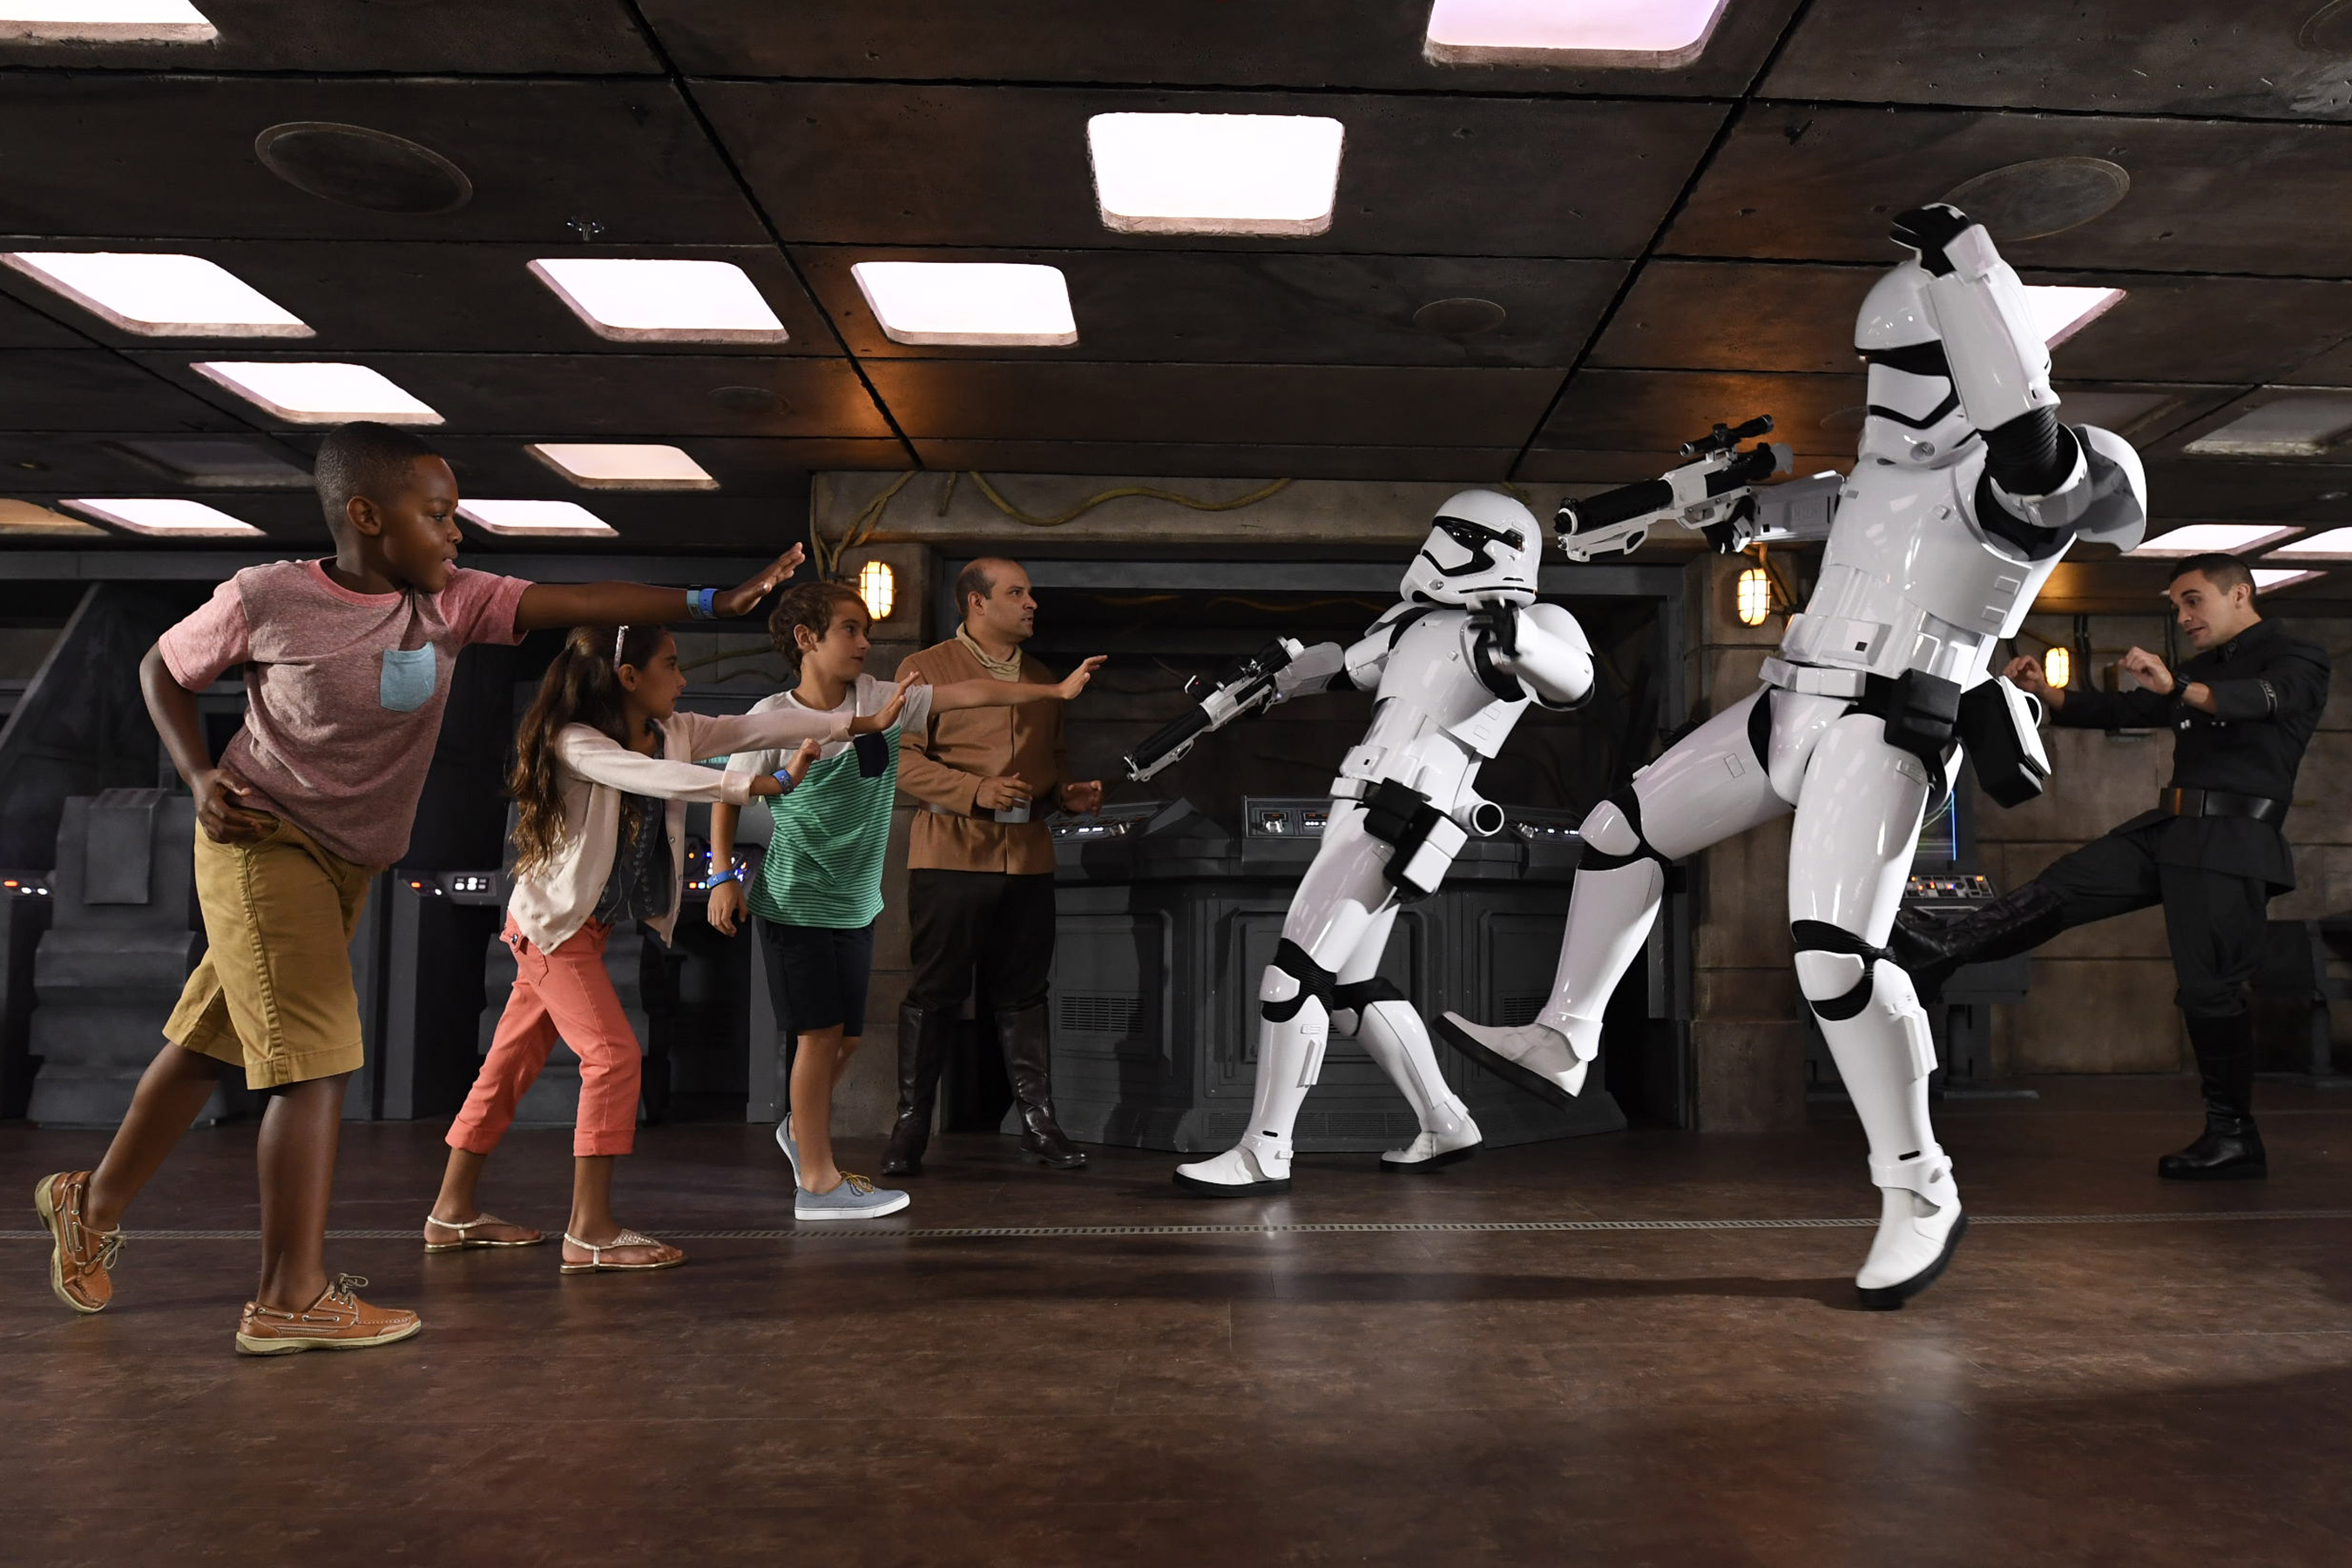 The Force is strong on Star Wars Day at Sea